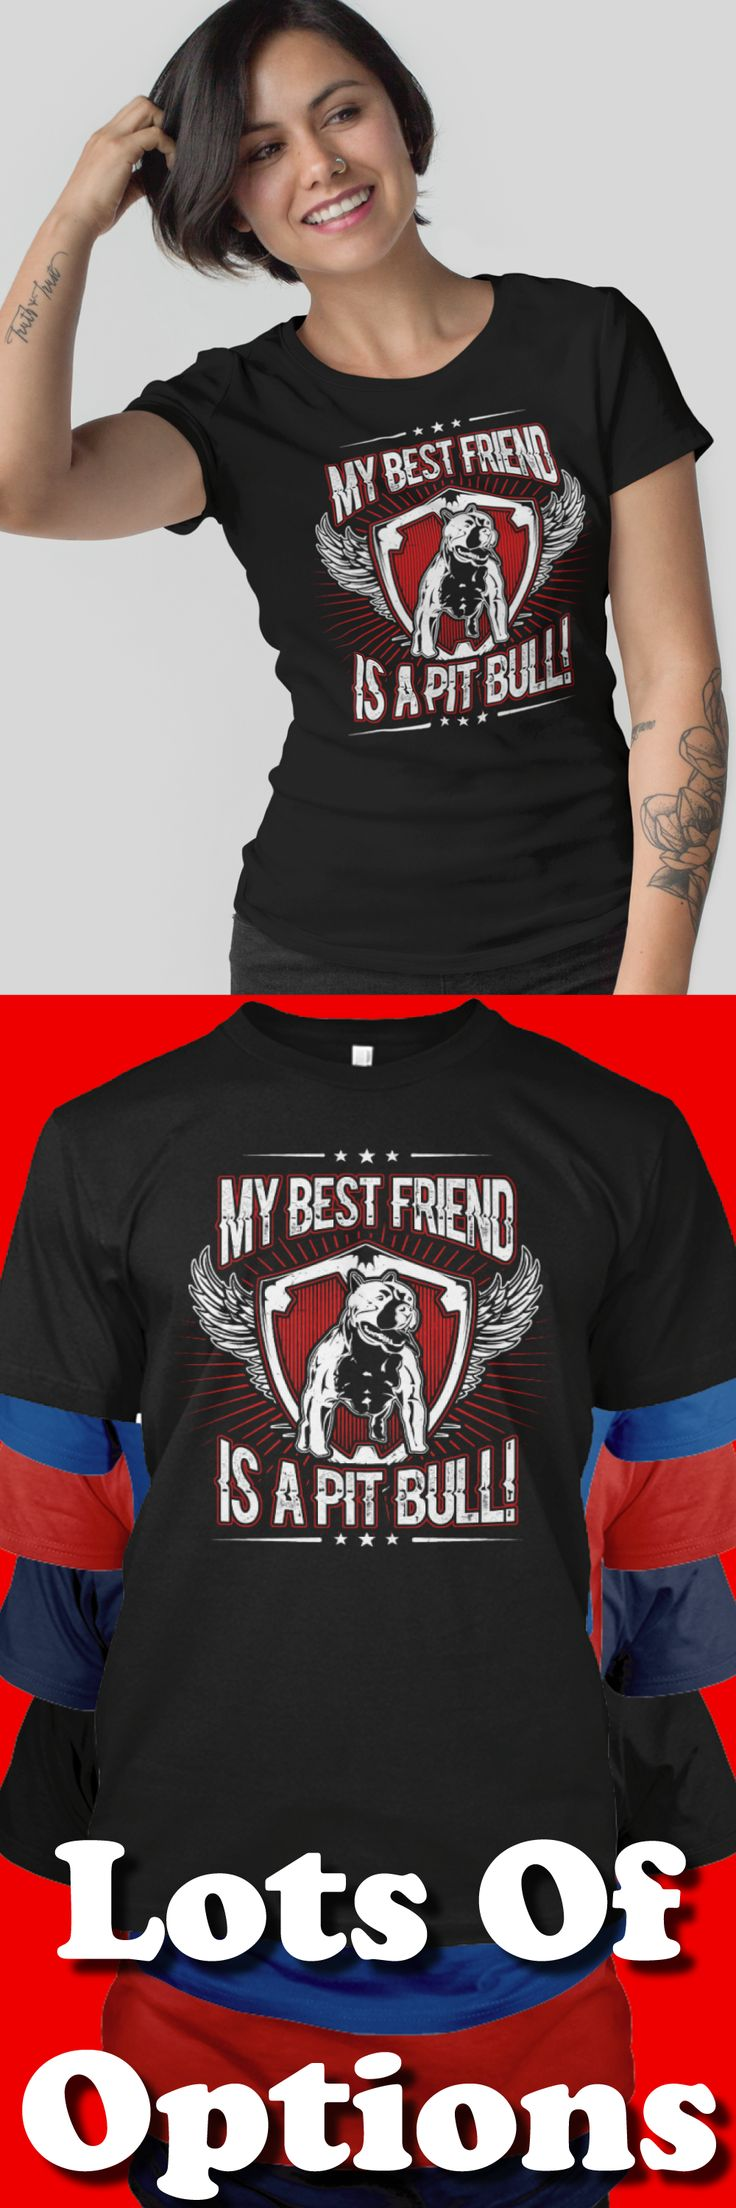 Pit Bull Shirt: Are You A Pit Bull Lover? Love Pit Bulls? Wear Pit Bull Shirts? Great Pit Bull Lovers Gift! Lots Of Sizes & Colors. Like Pit Bull, Pit Bull Mama, Is Your Pit Bull Family? Strict Limit Of 5 Shirts! Treat Yourself & Click Now! https://teespring.com/SP64-439